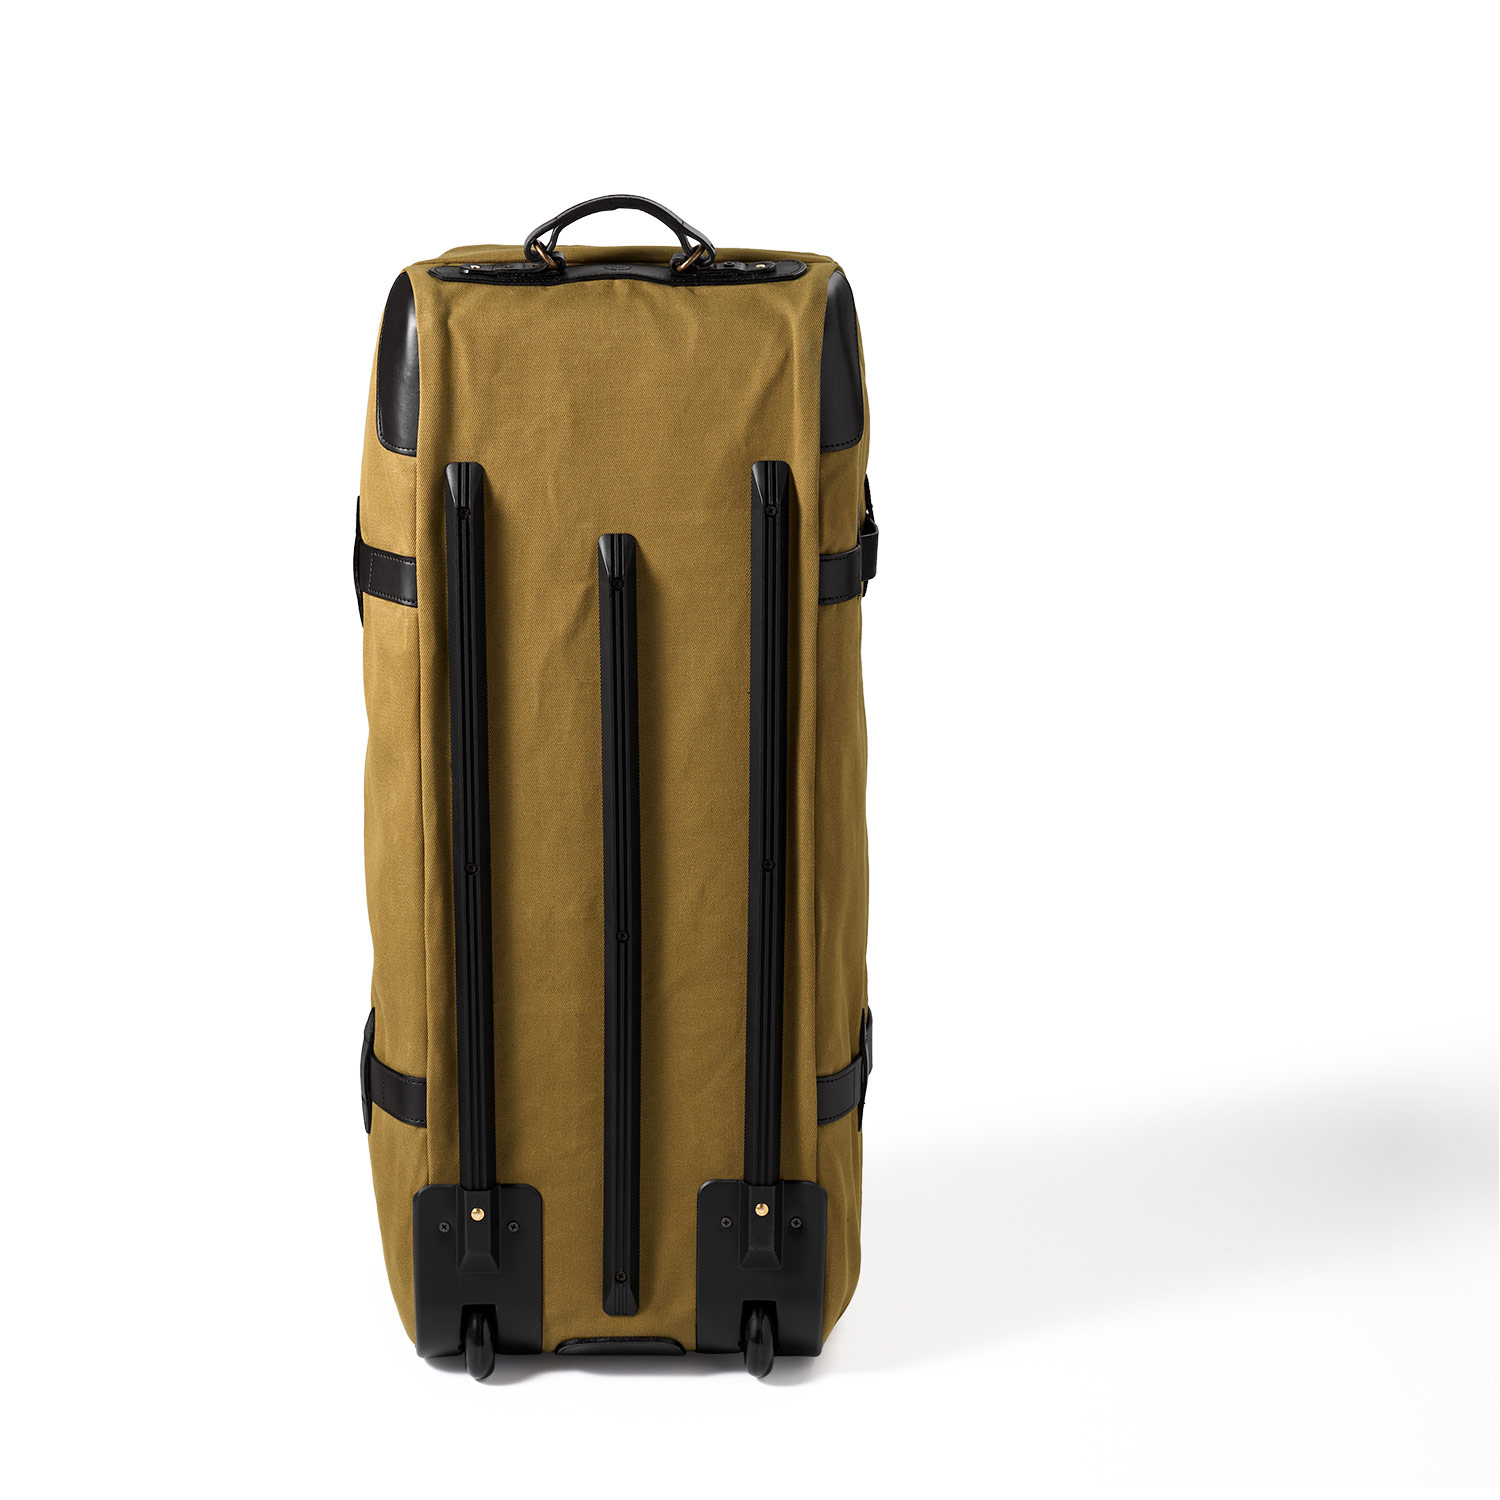 Filson Travel Bag Or Duffle